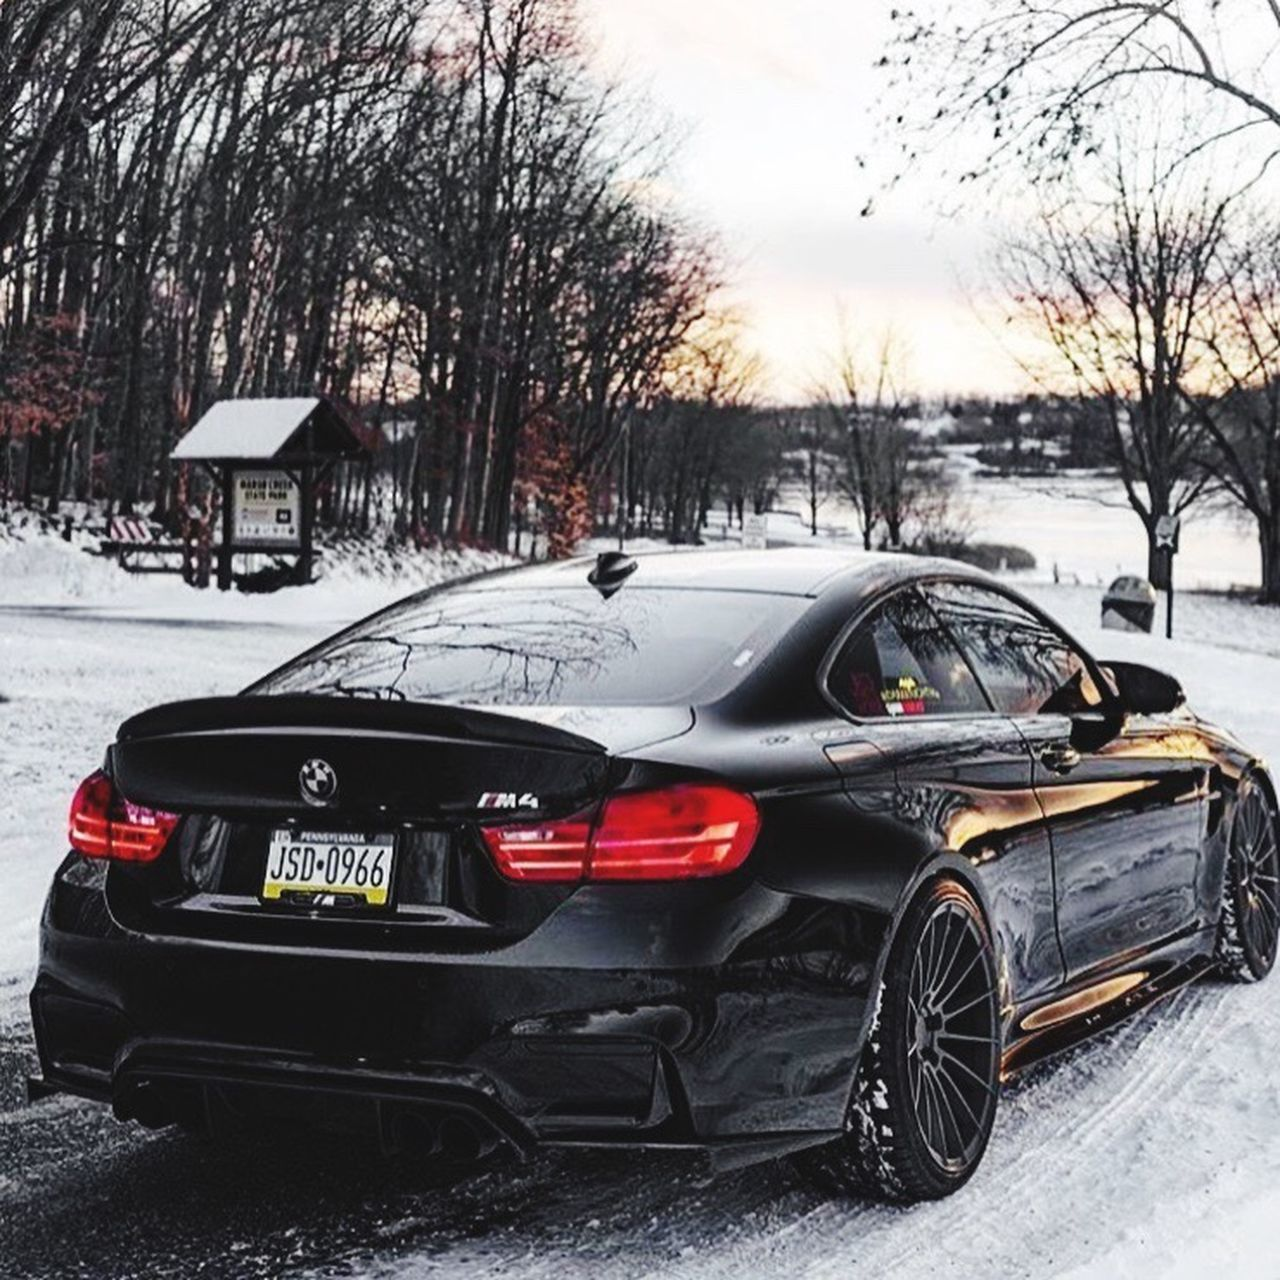 Darknight m4 | 📍 join us on instagram @billionairelabel Billionaire  Billionairelabel Bimmer Transportation Car Land Vehicle Mode Of Transport Road Tree Street Nature Outdoors City Life Day No People Parked Non-urban Scene